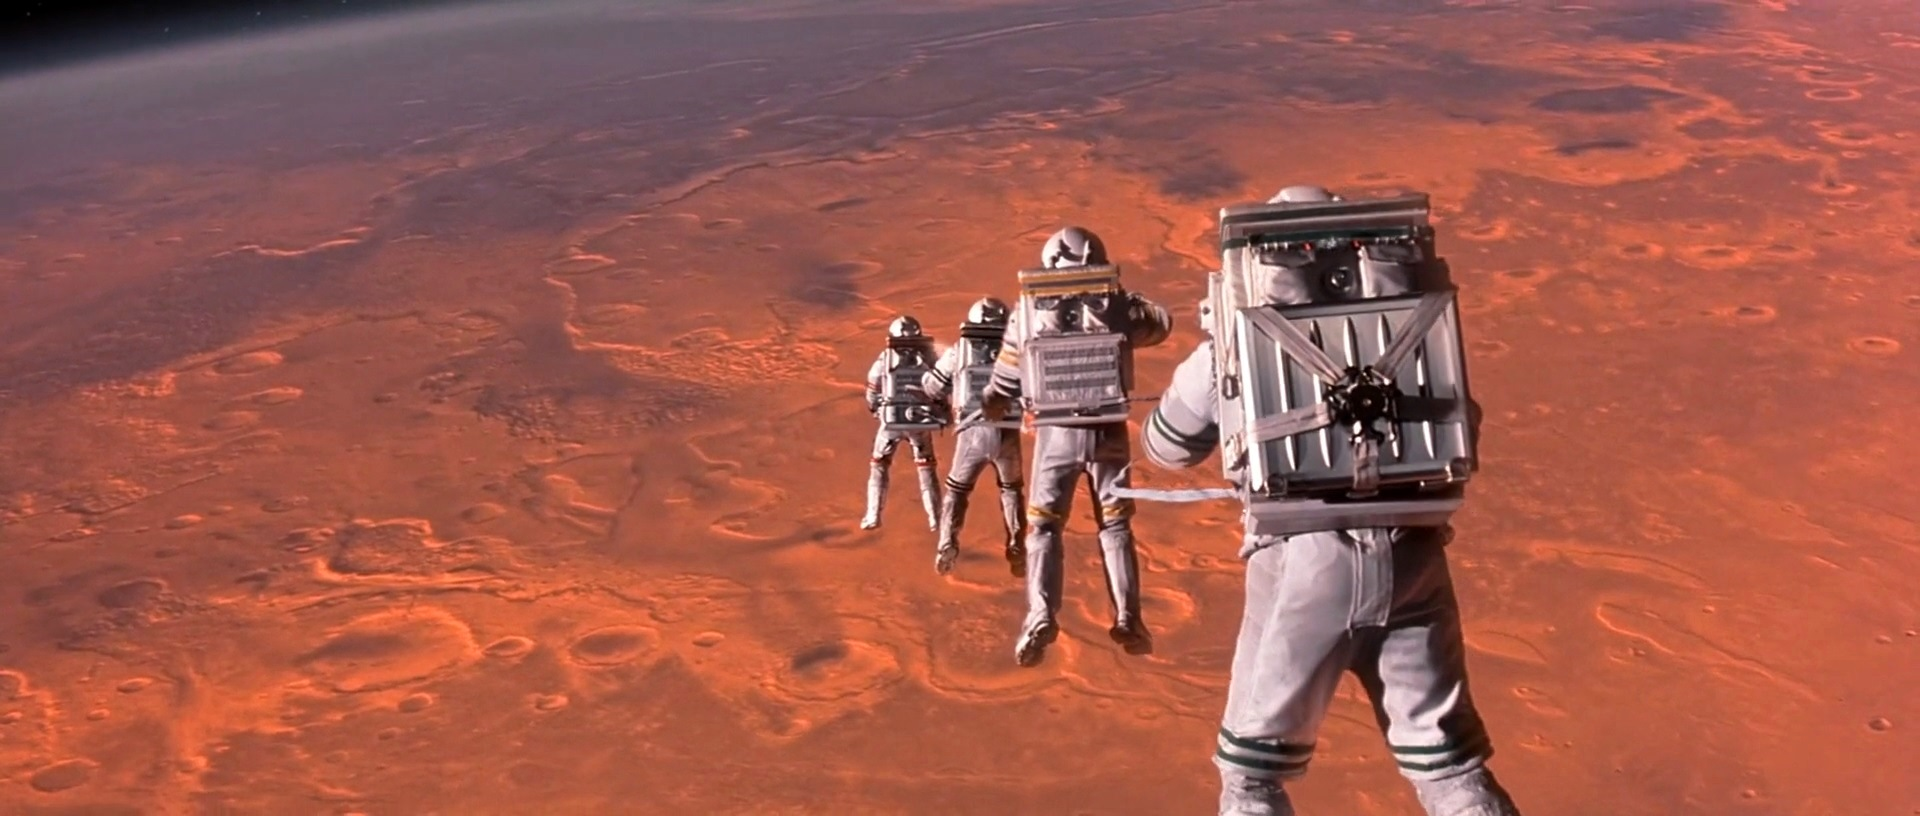 HD images from Mission to Mars (2000) movie | human Mars